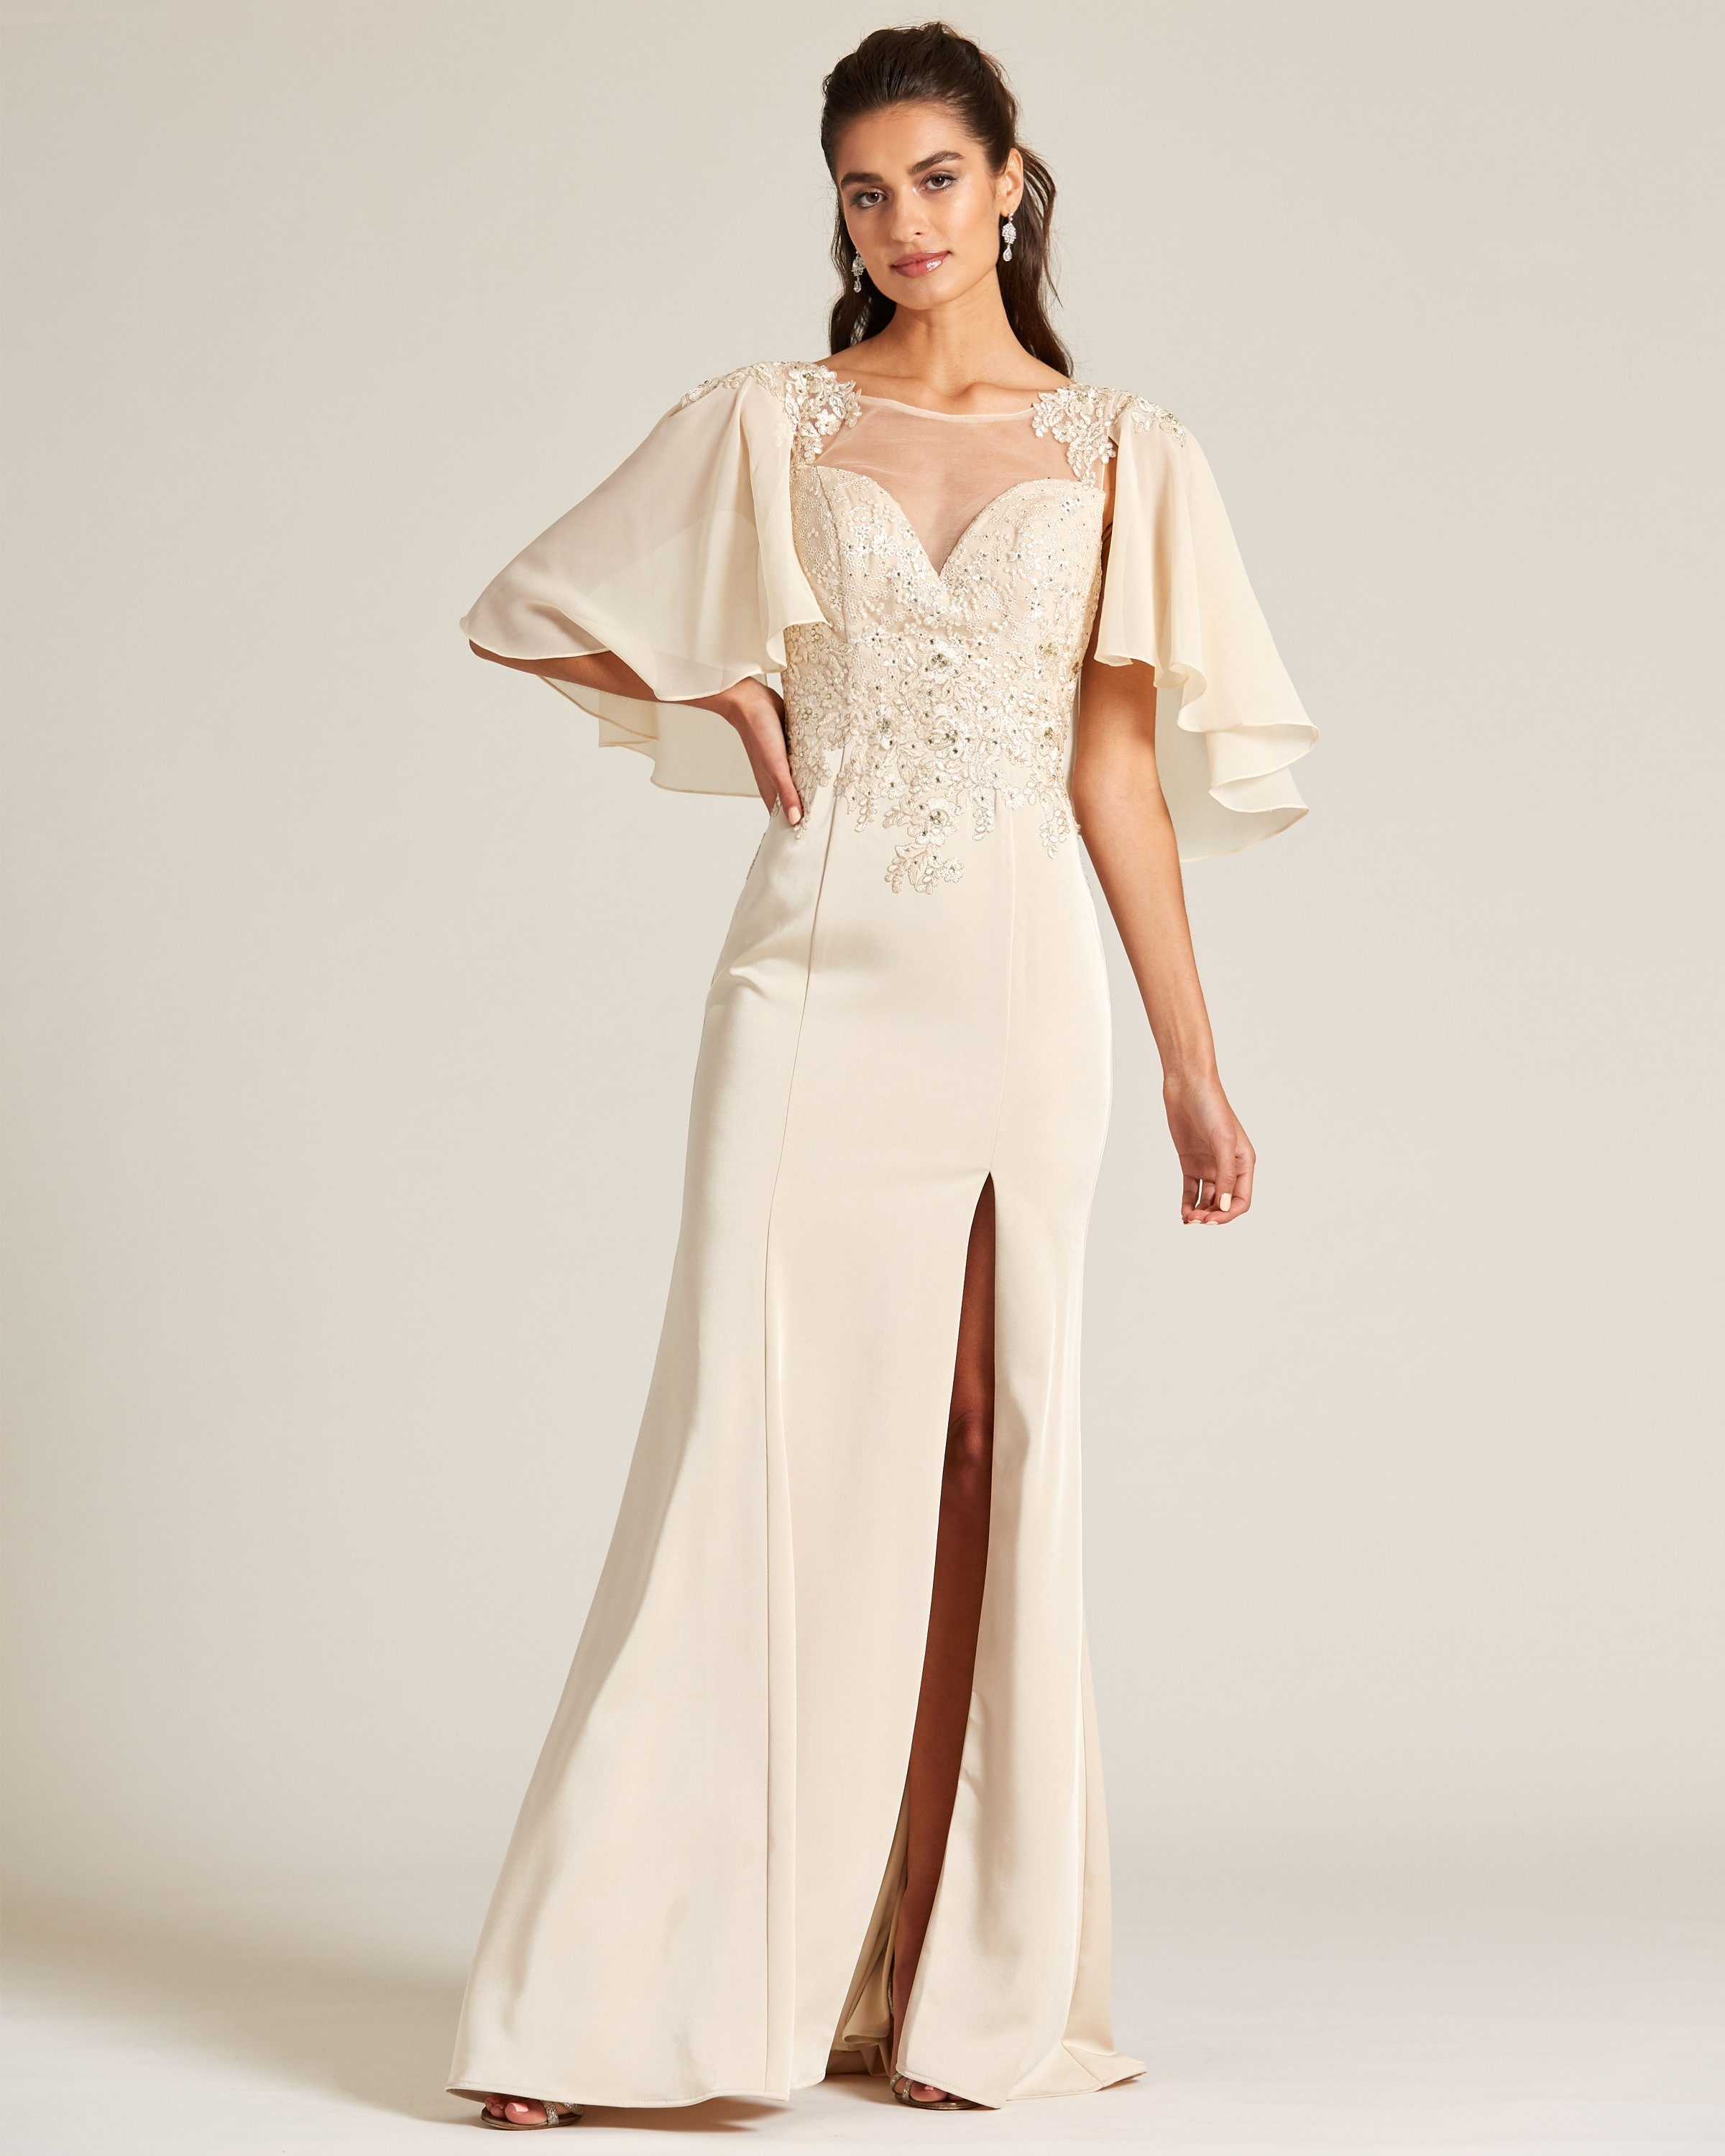 Cream Vintage Style Evening Gown